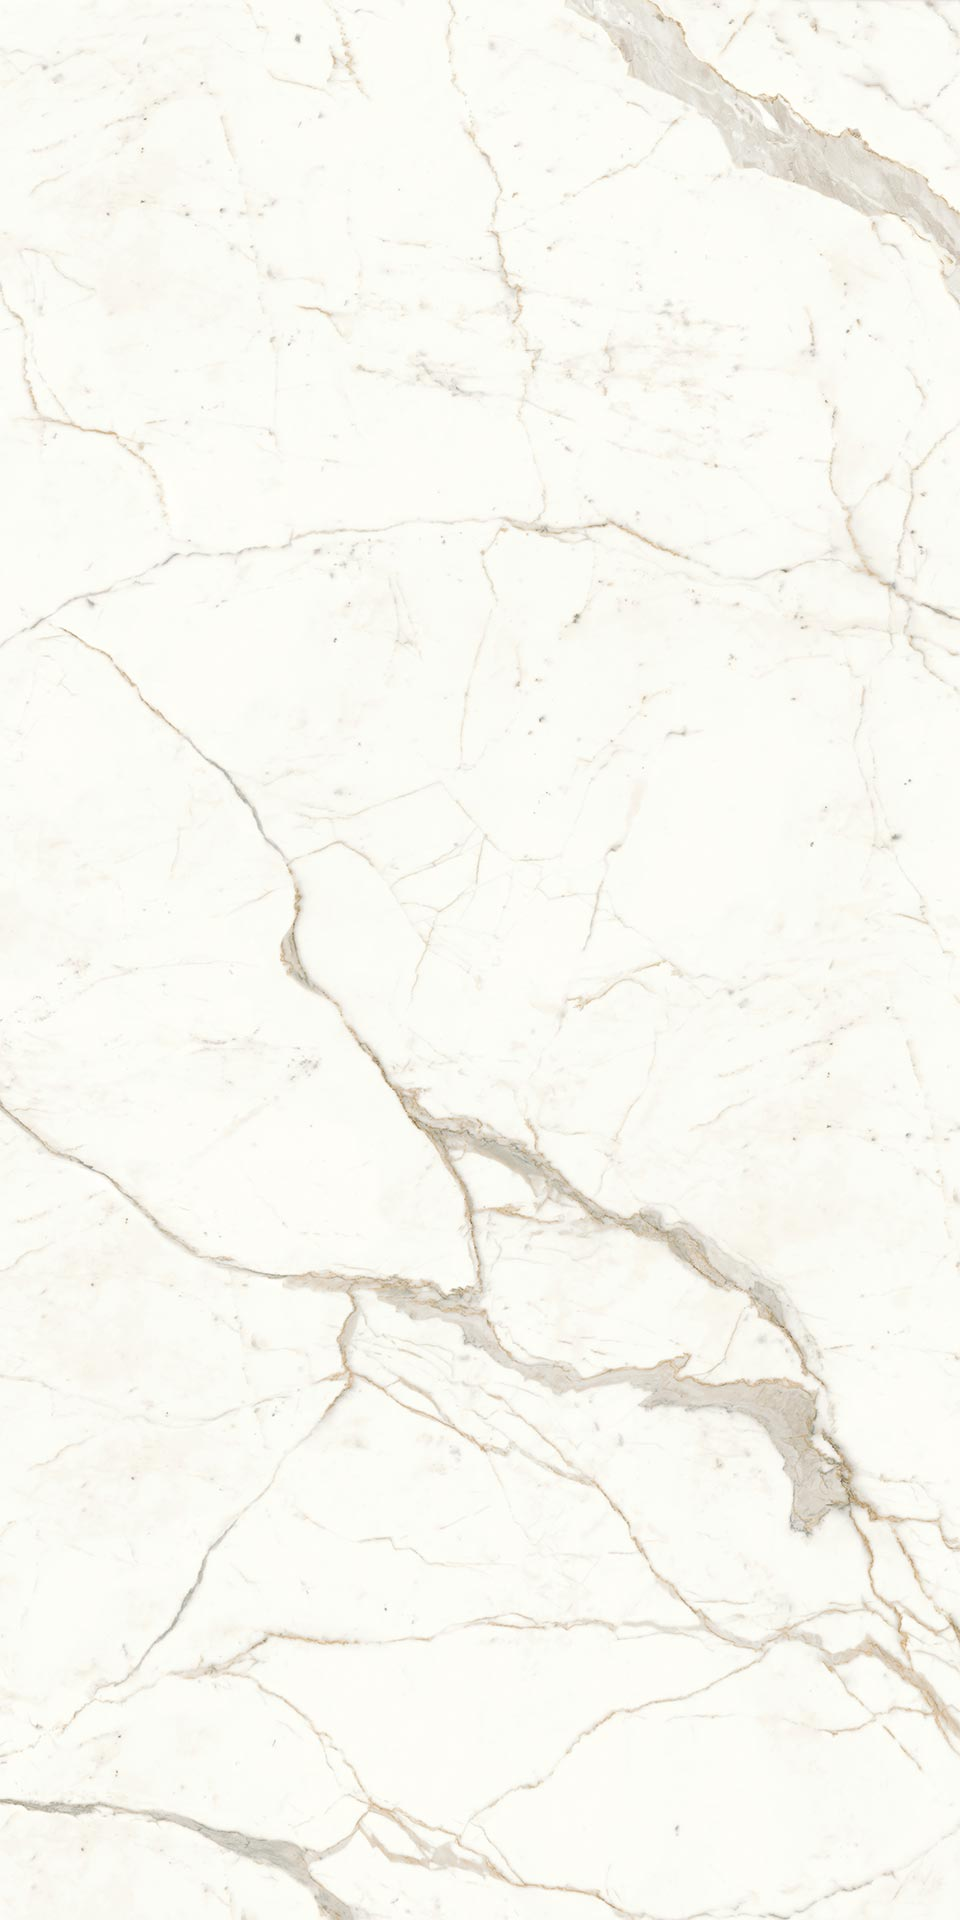 120x240-1-calacatta-apuan-marble-effect-9mm-floor-porcelain-slab